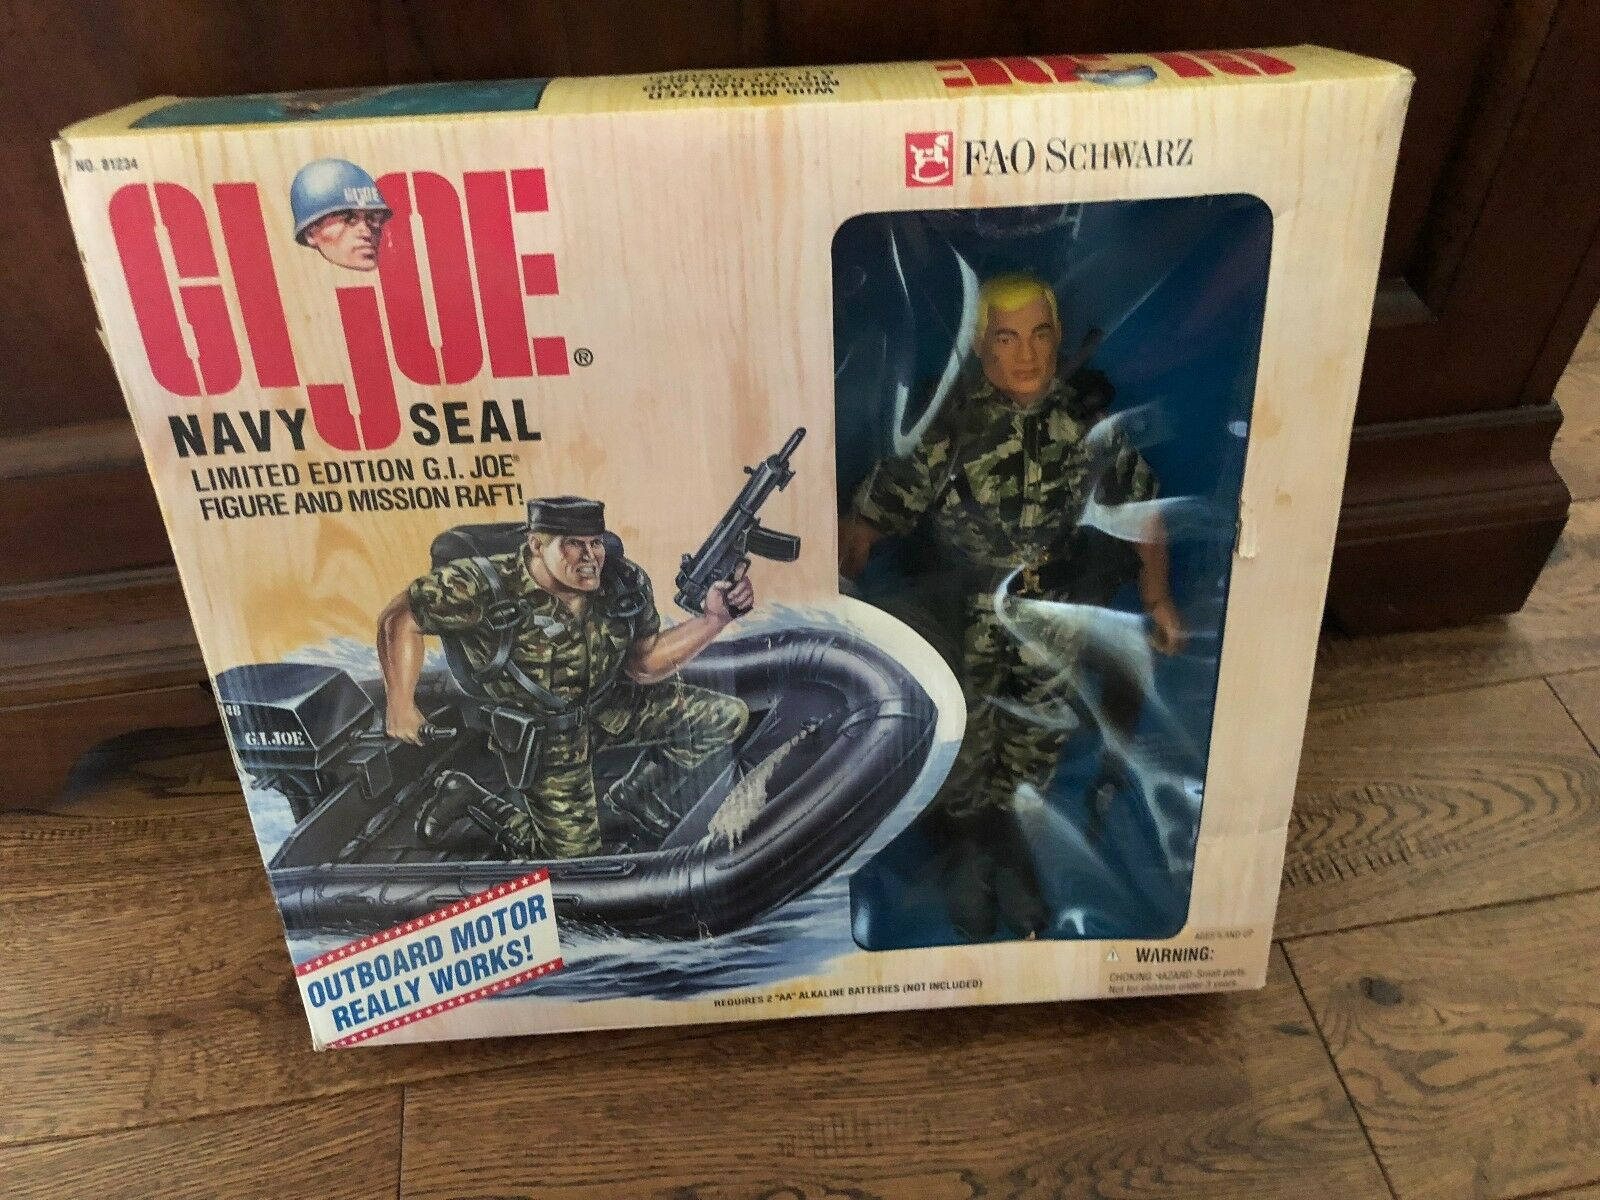 GI Joe FAO black Navy Seal Limited Limited Limited Edition Never Been Out of Box b0e3bd